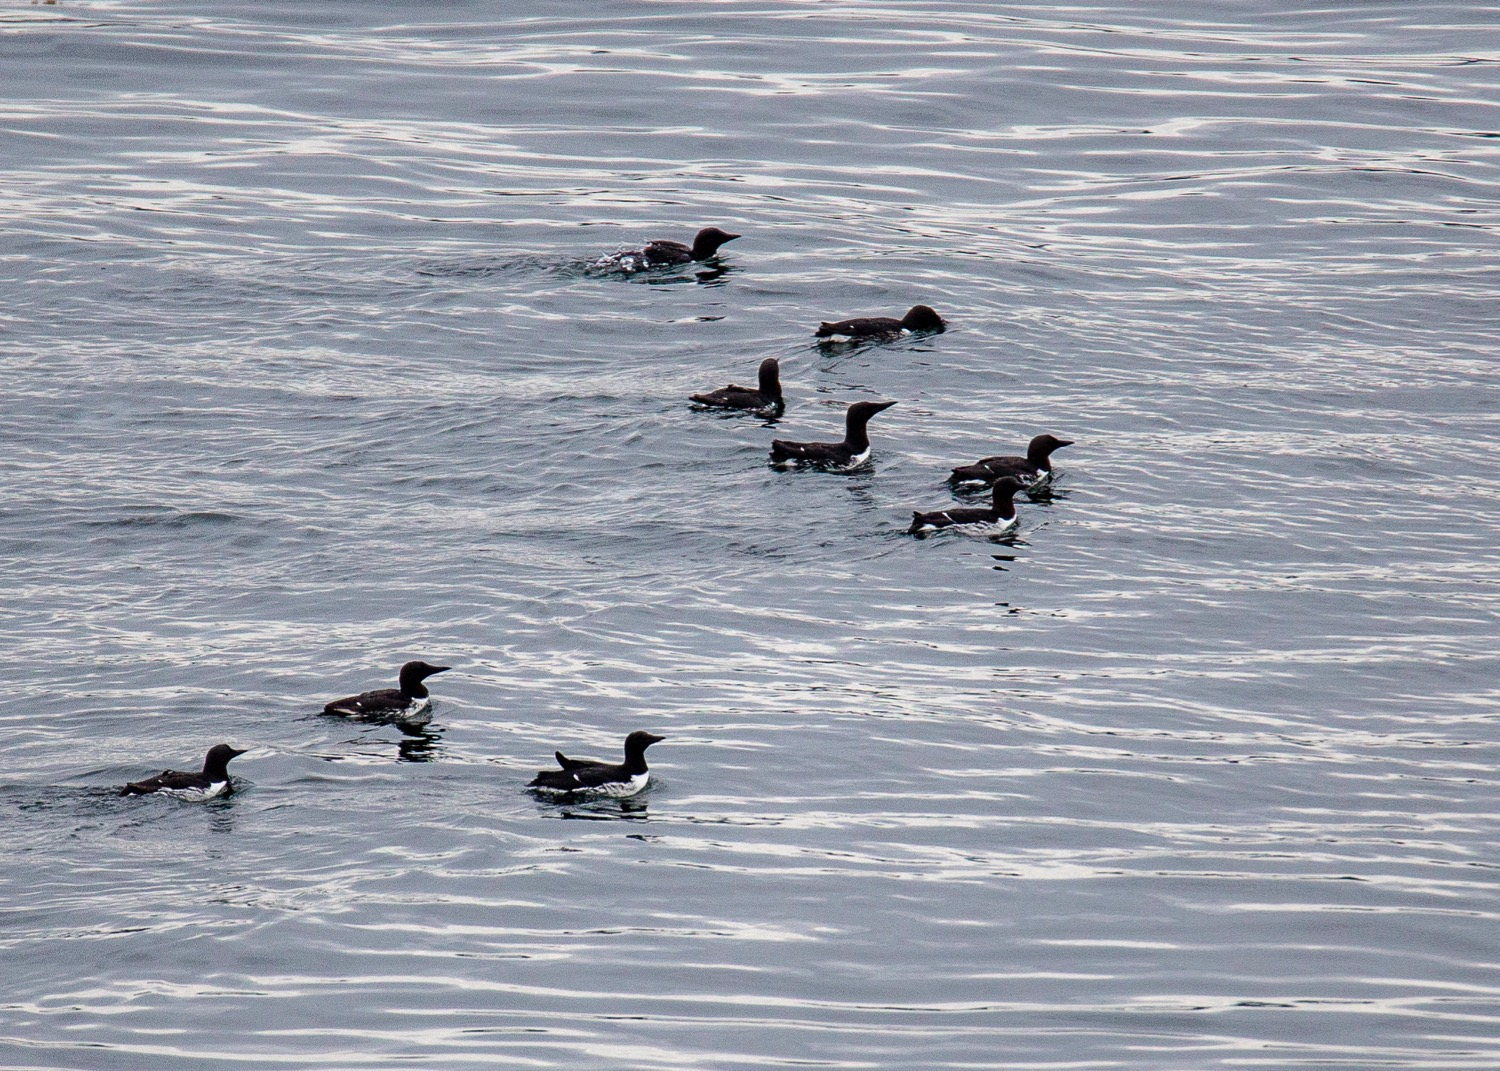 More common murres